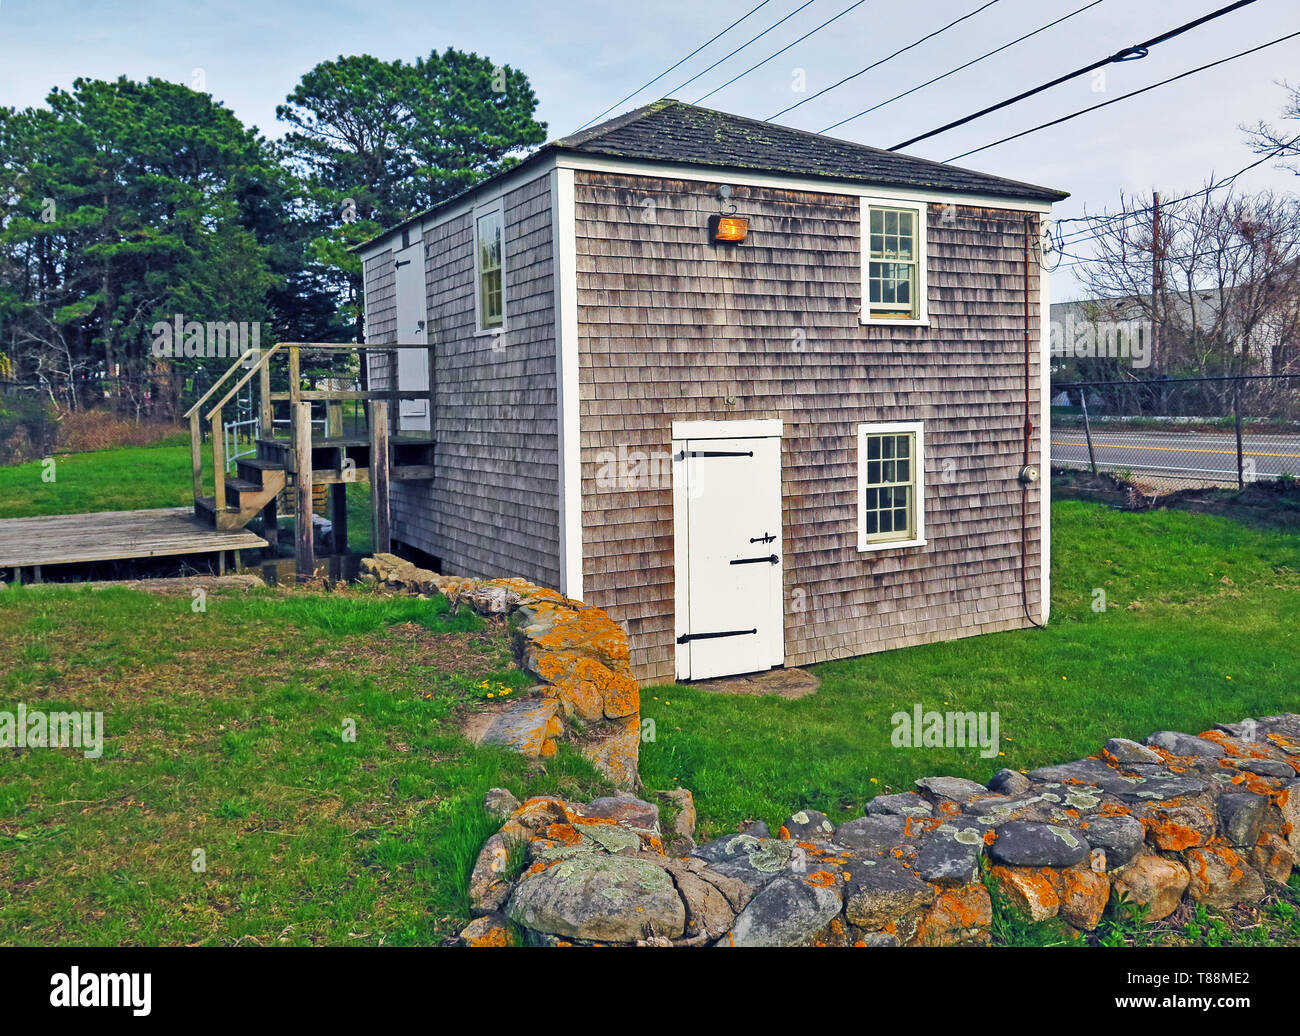 USA, Massachusetts, Cape Cod, New England, Yarmouth, Baxter Grist Mill, tidal, water driven, swans nesting, - Stock Image